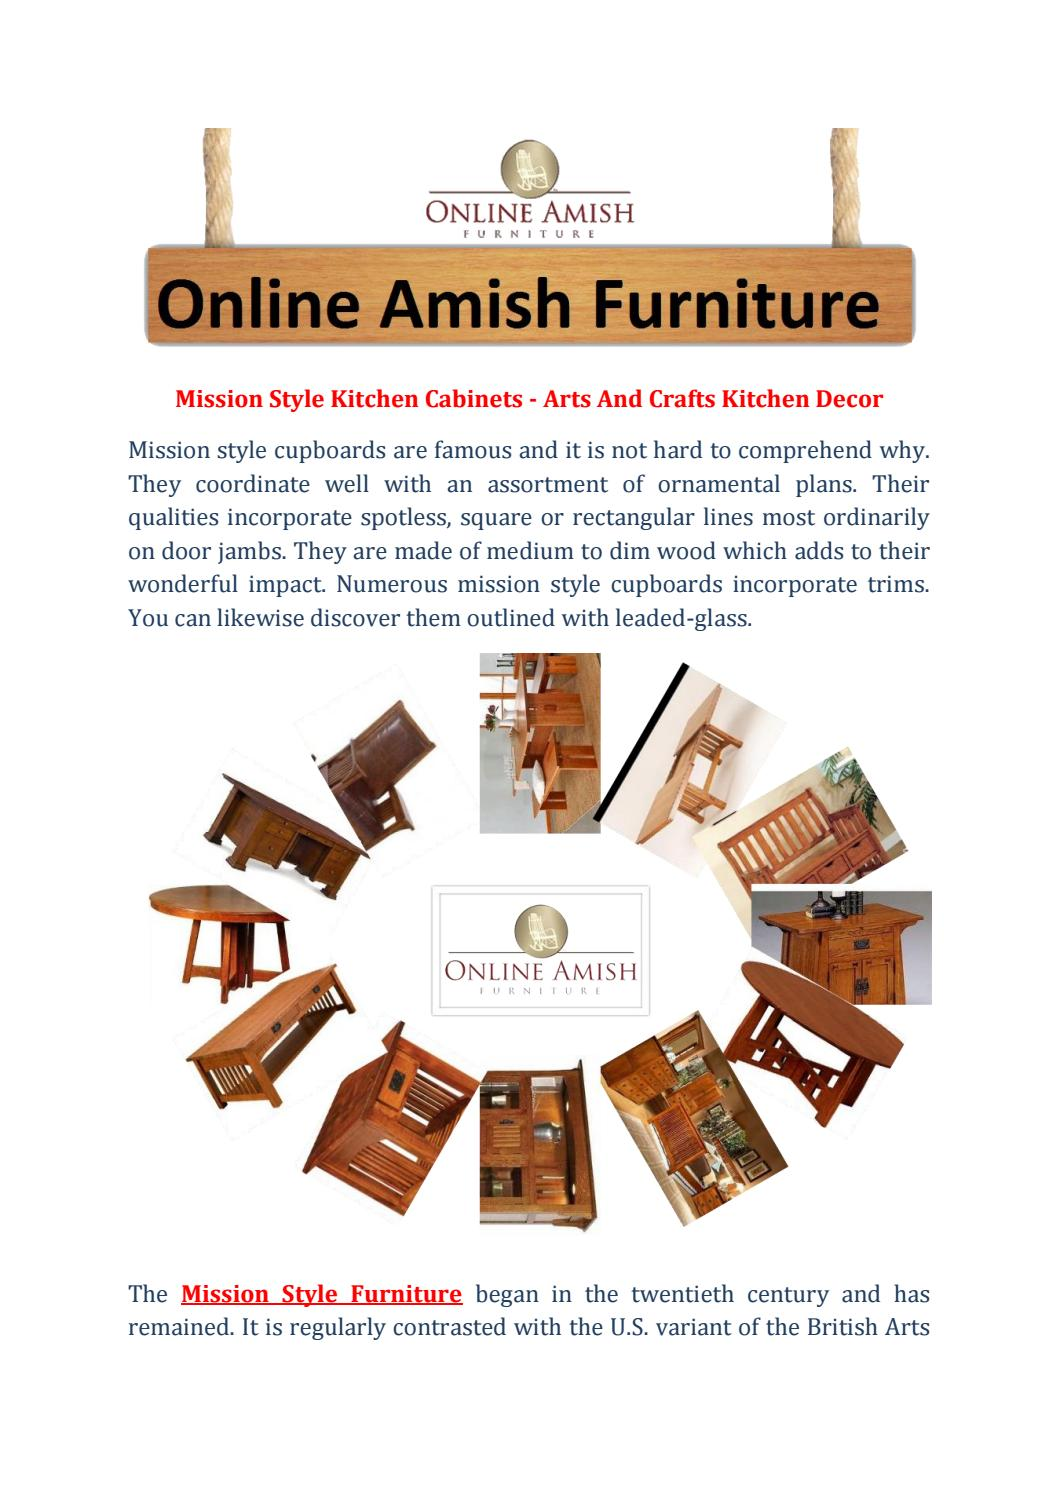 Mission Style Kitchen Cabinets Arts And Crafts Kitchen Decor By Online Amish Furniture Issuu